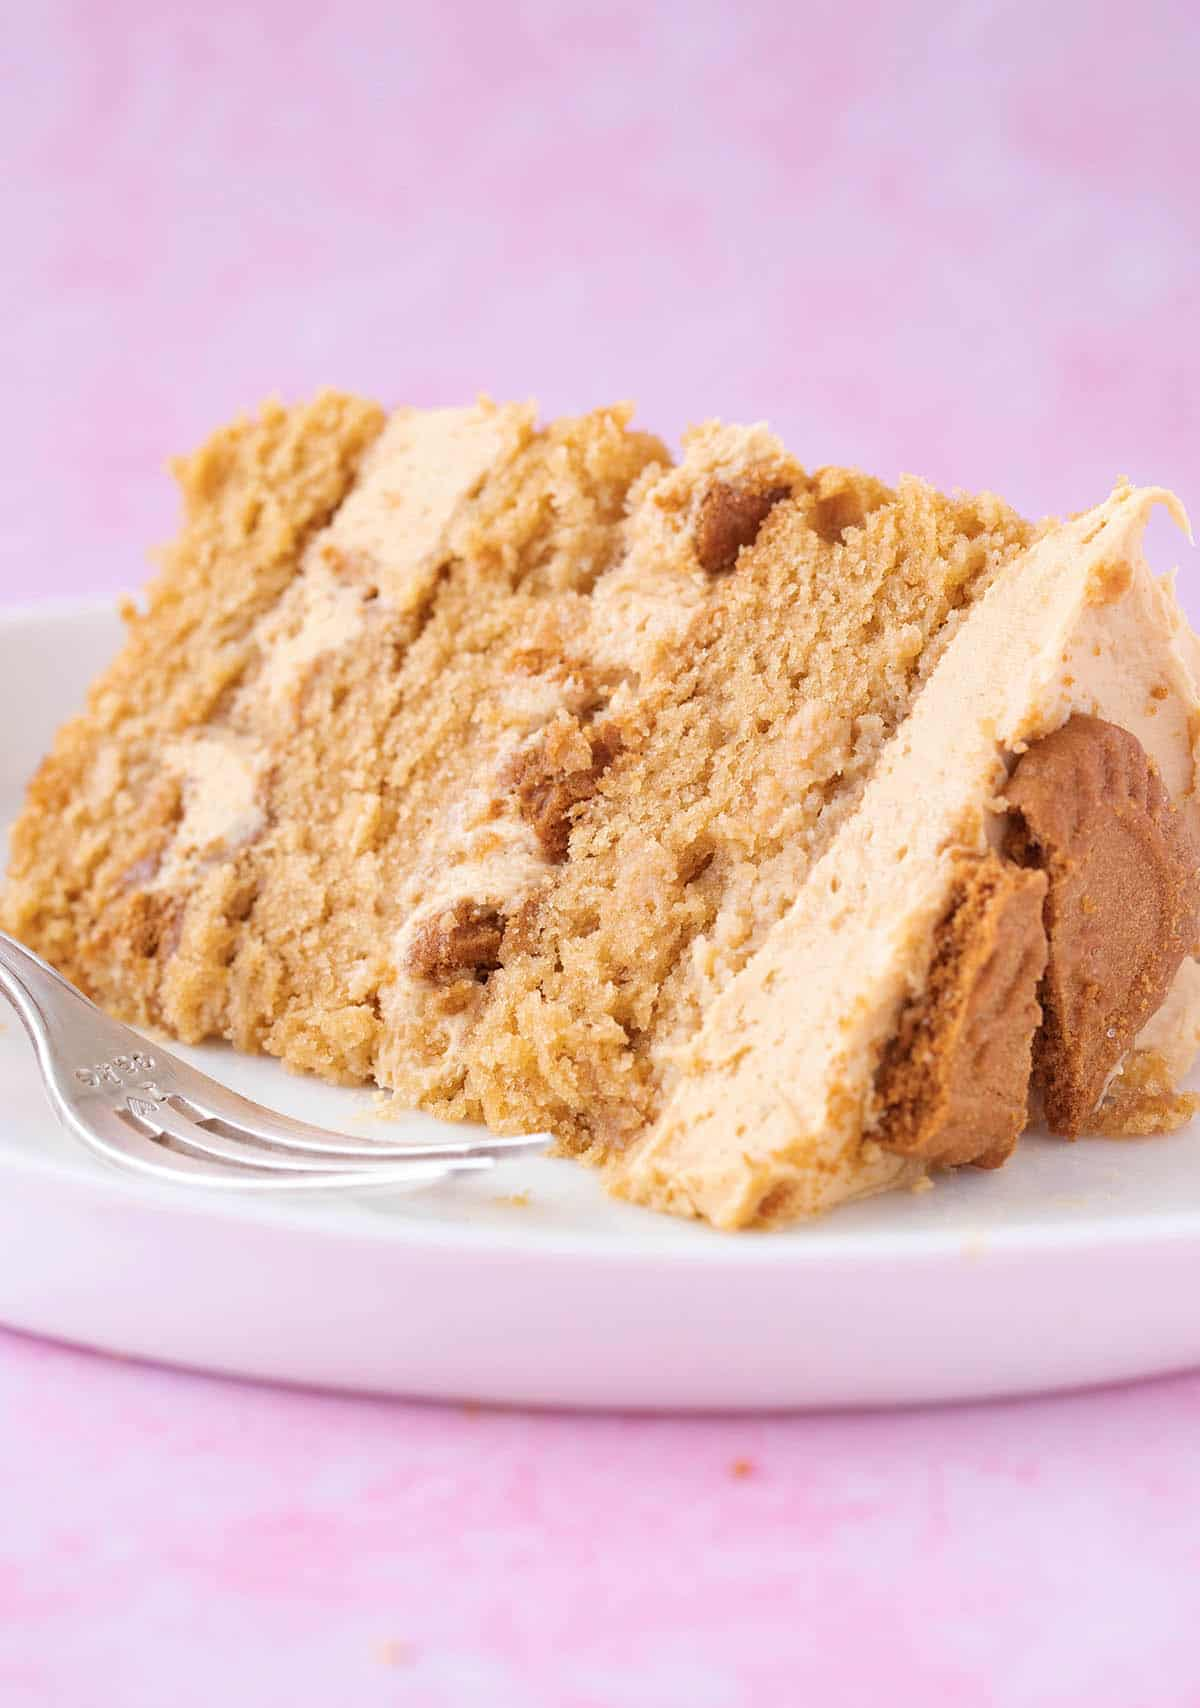 A slice of homemade Biscoff Cake on a pink background.